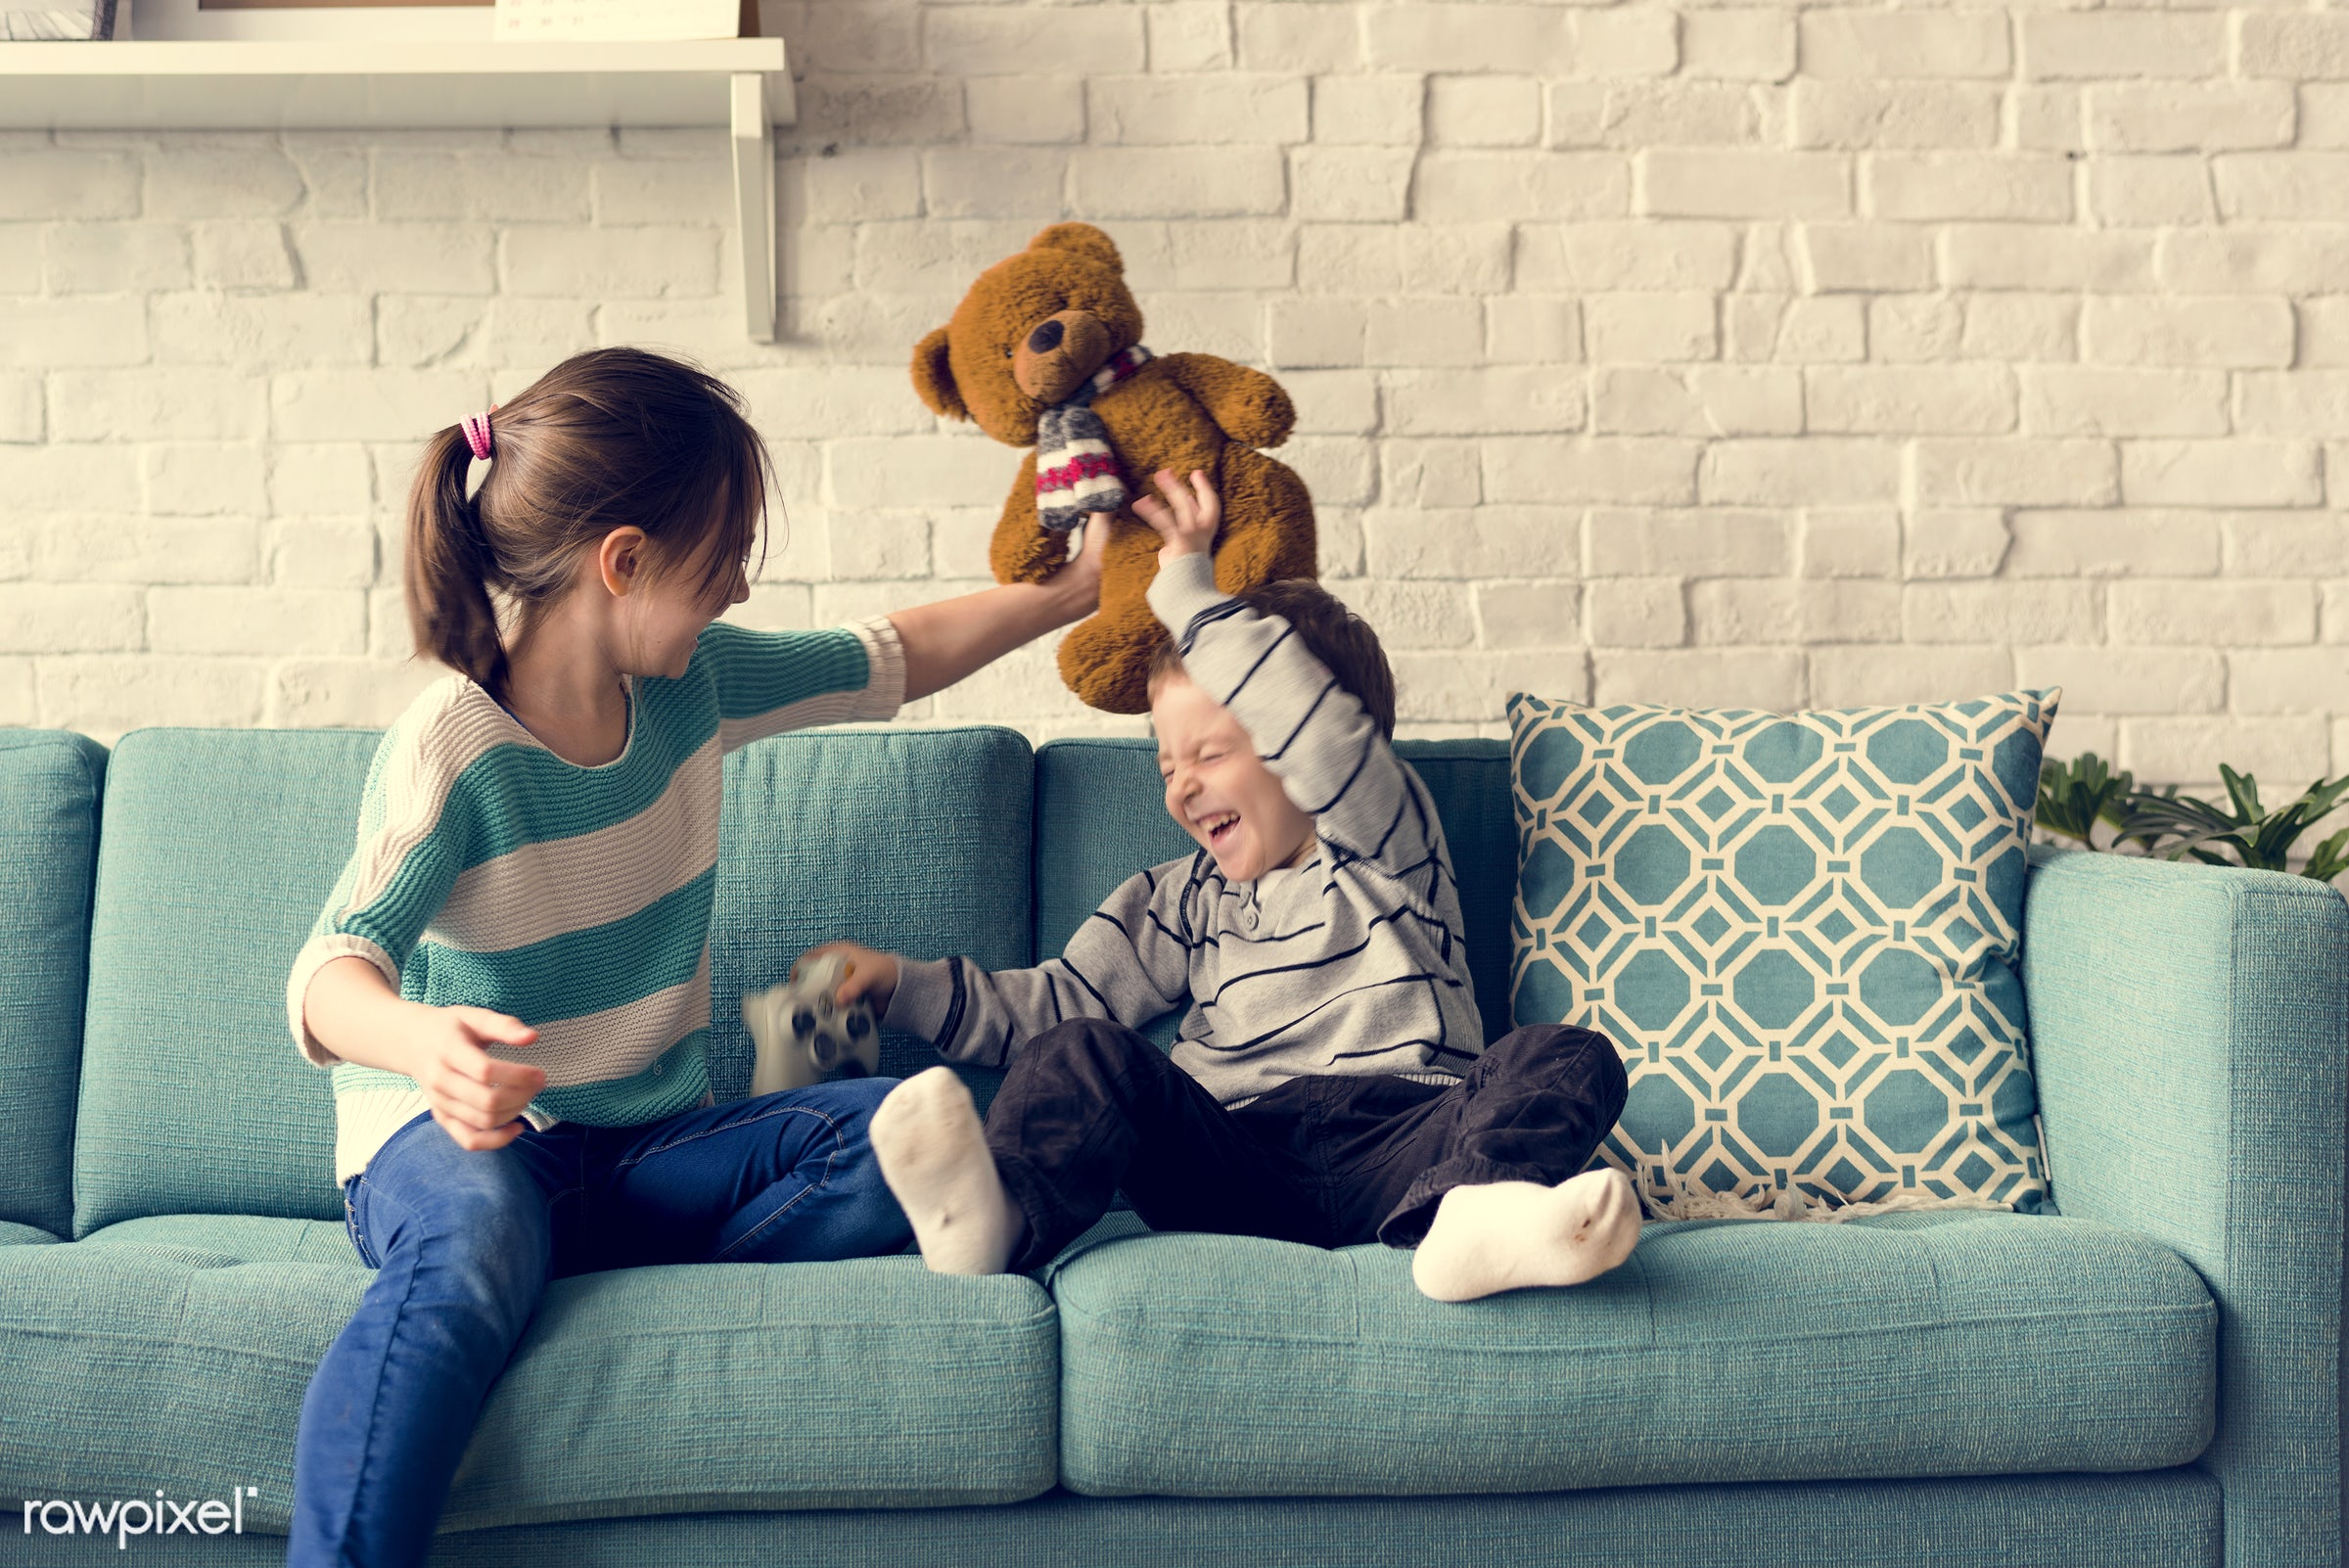 home, playful, teddy bear, relax, daughter, object, caucasian, sister, sofa, laughing, living room, cheerful, activity,...